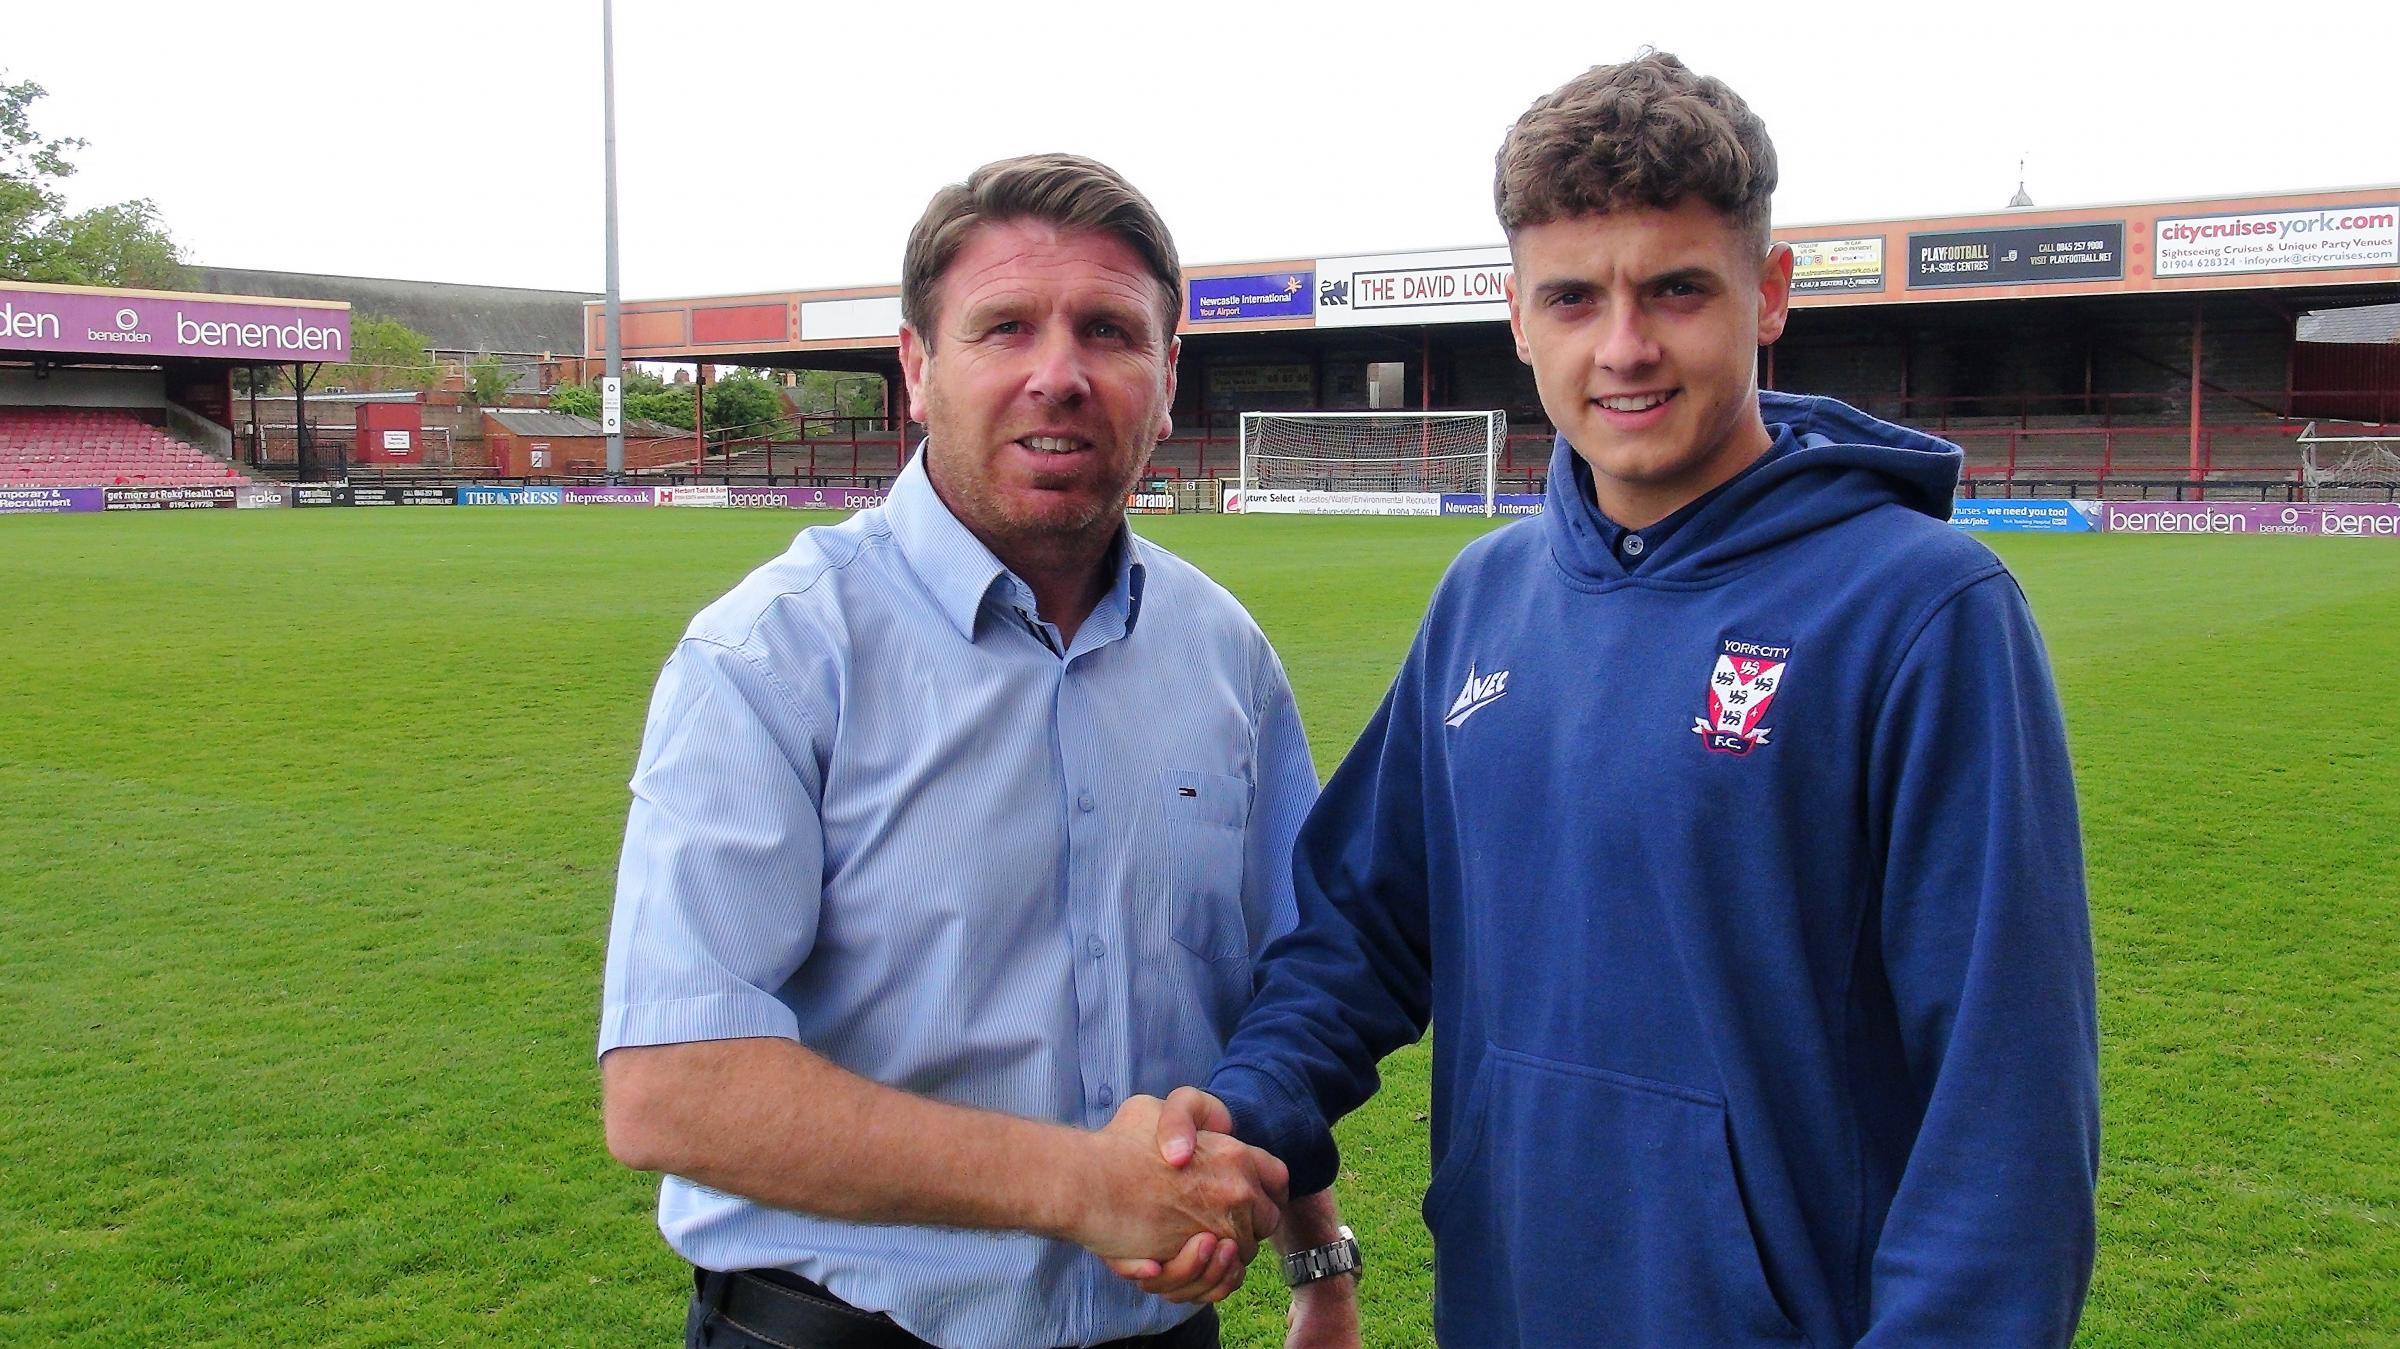 TURNING PRO: Harry Thompson (right) shakes on terms with York City boss Martin Gray